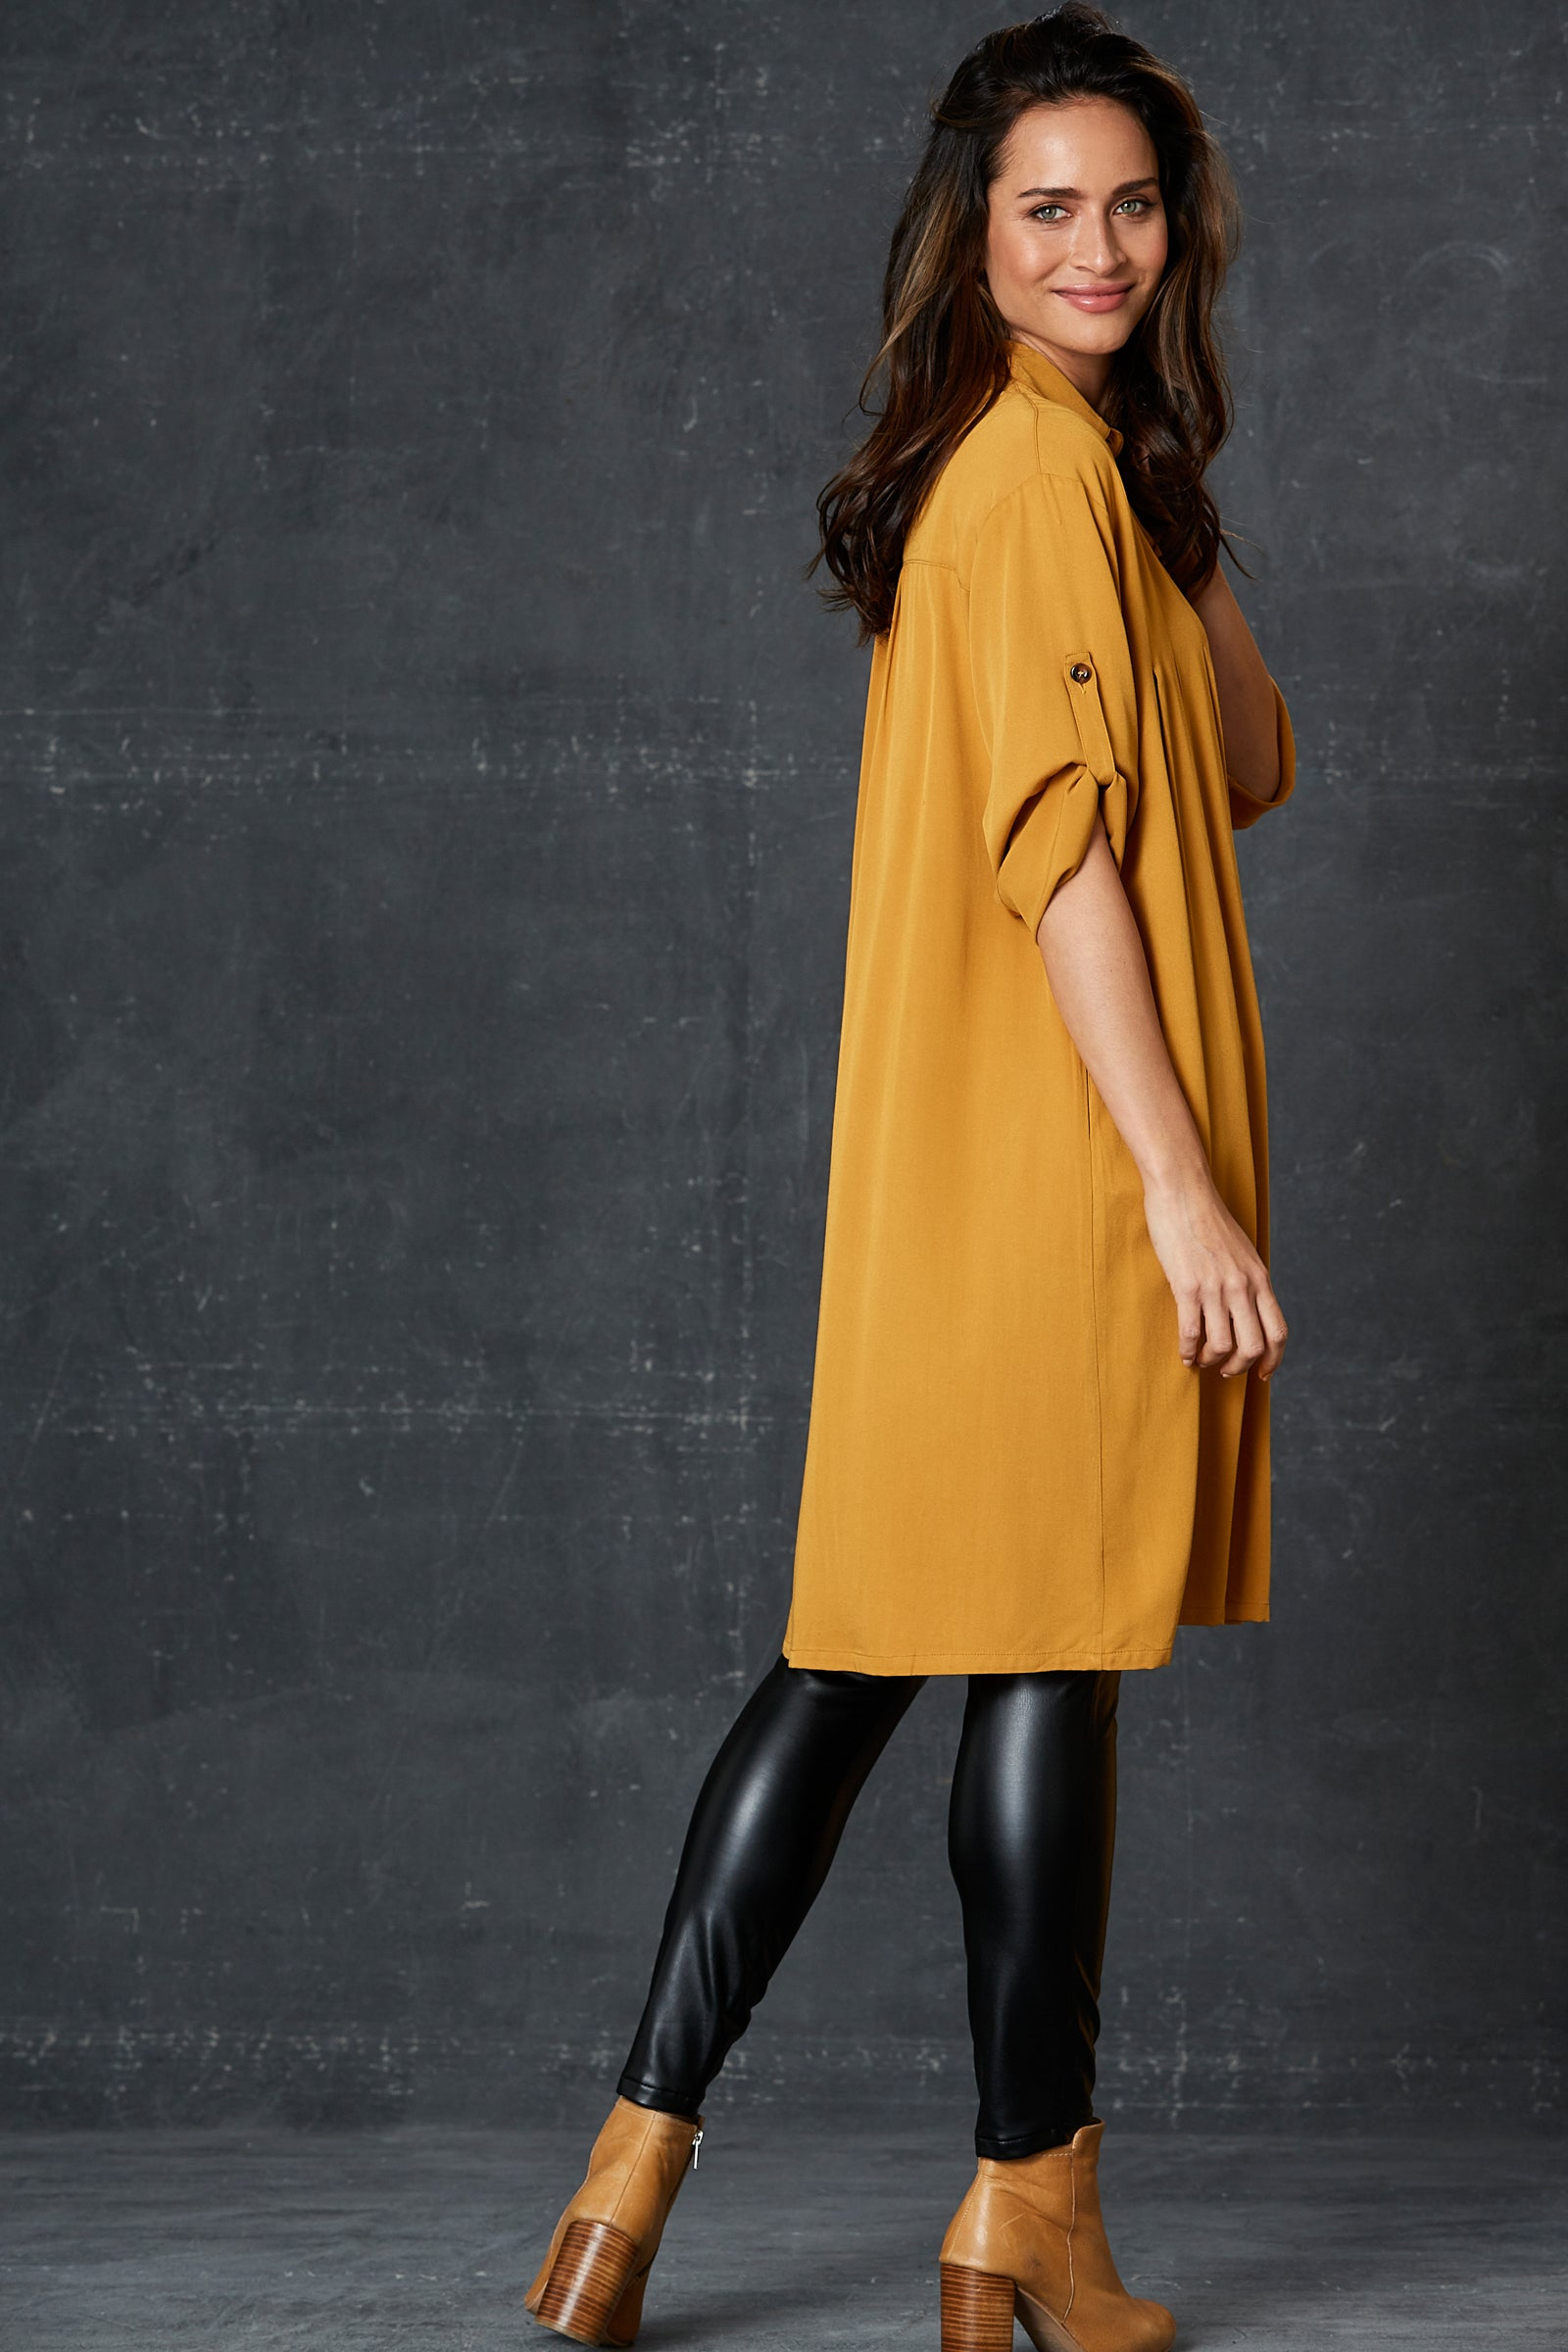 Getaway Shirt Dress - Saffron - eb&ive Clothing - Shirt Dress One Size